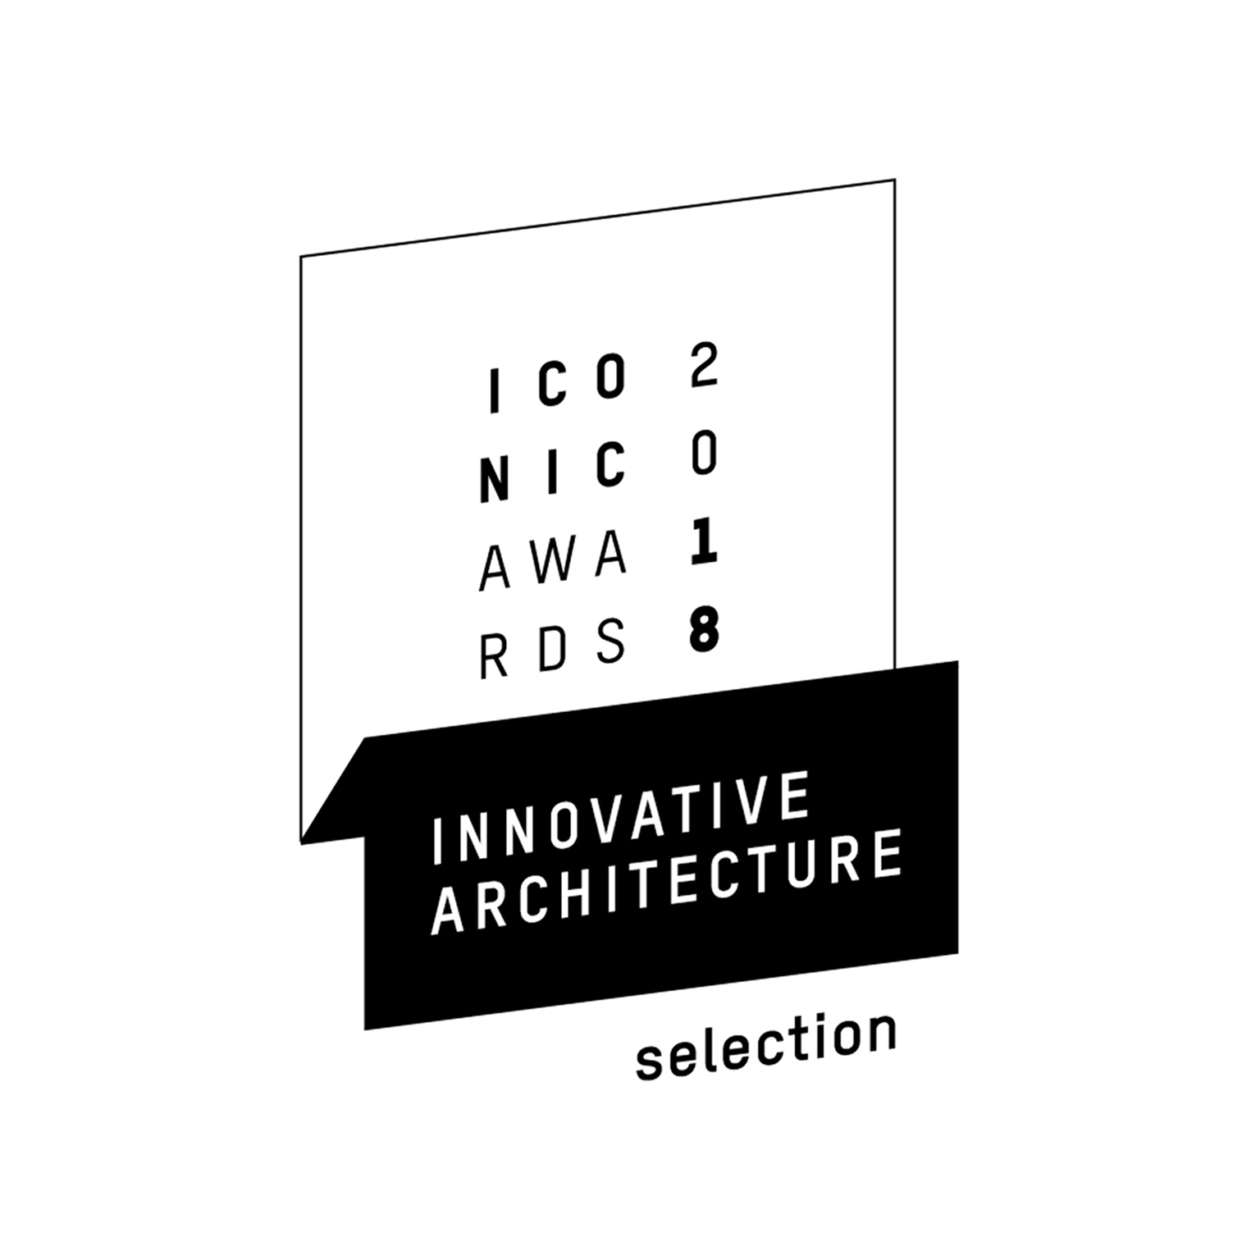 Iconic Awards 2018 Innovative Architecture Selection 01B